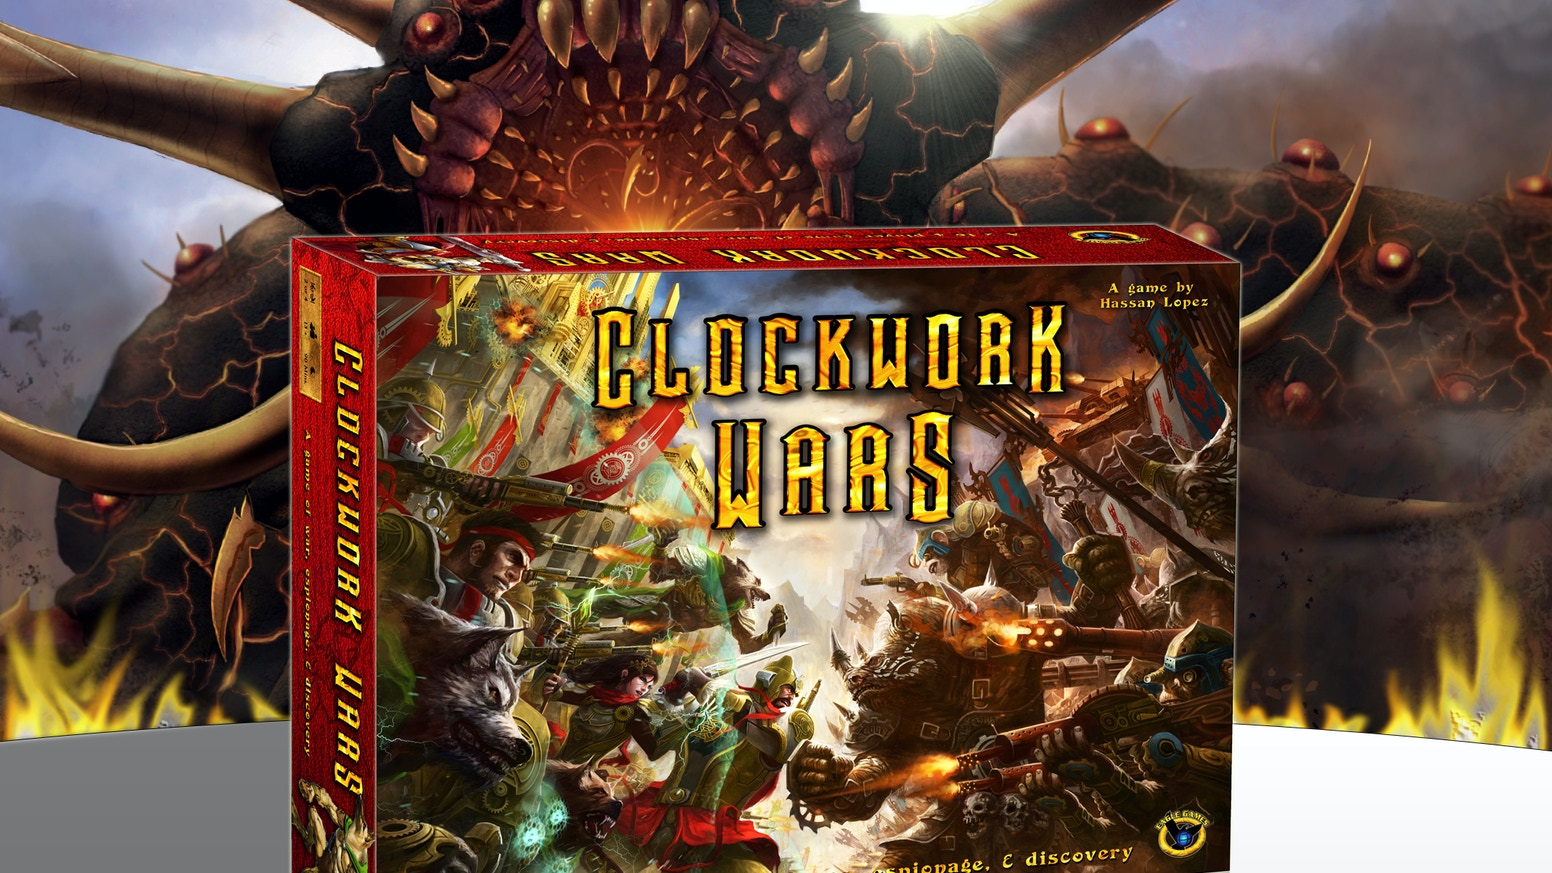 Position your troops, research powerful discoveries, employ espionage, and capture strategic resources to win the game!